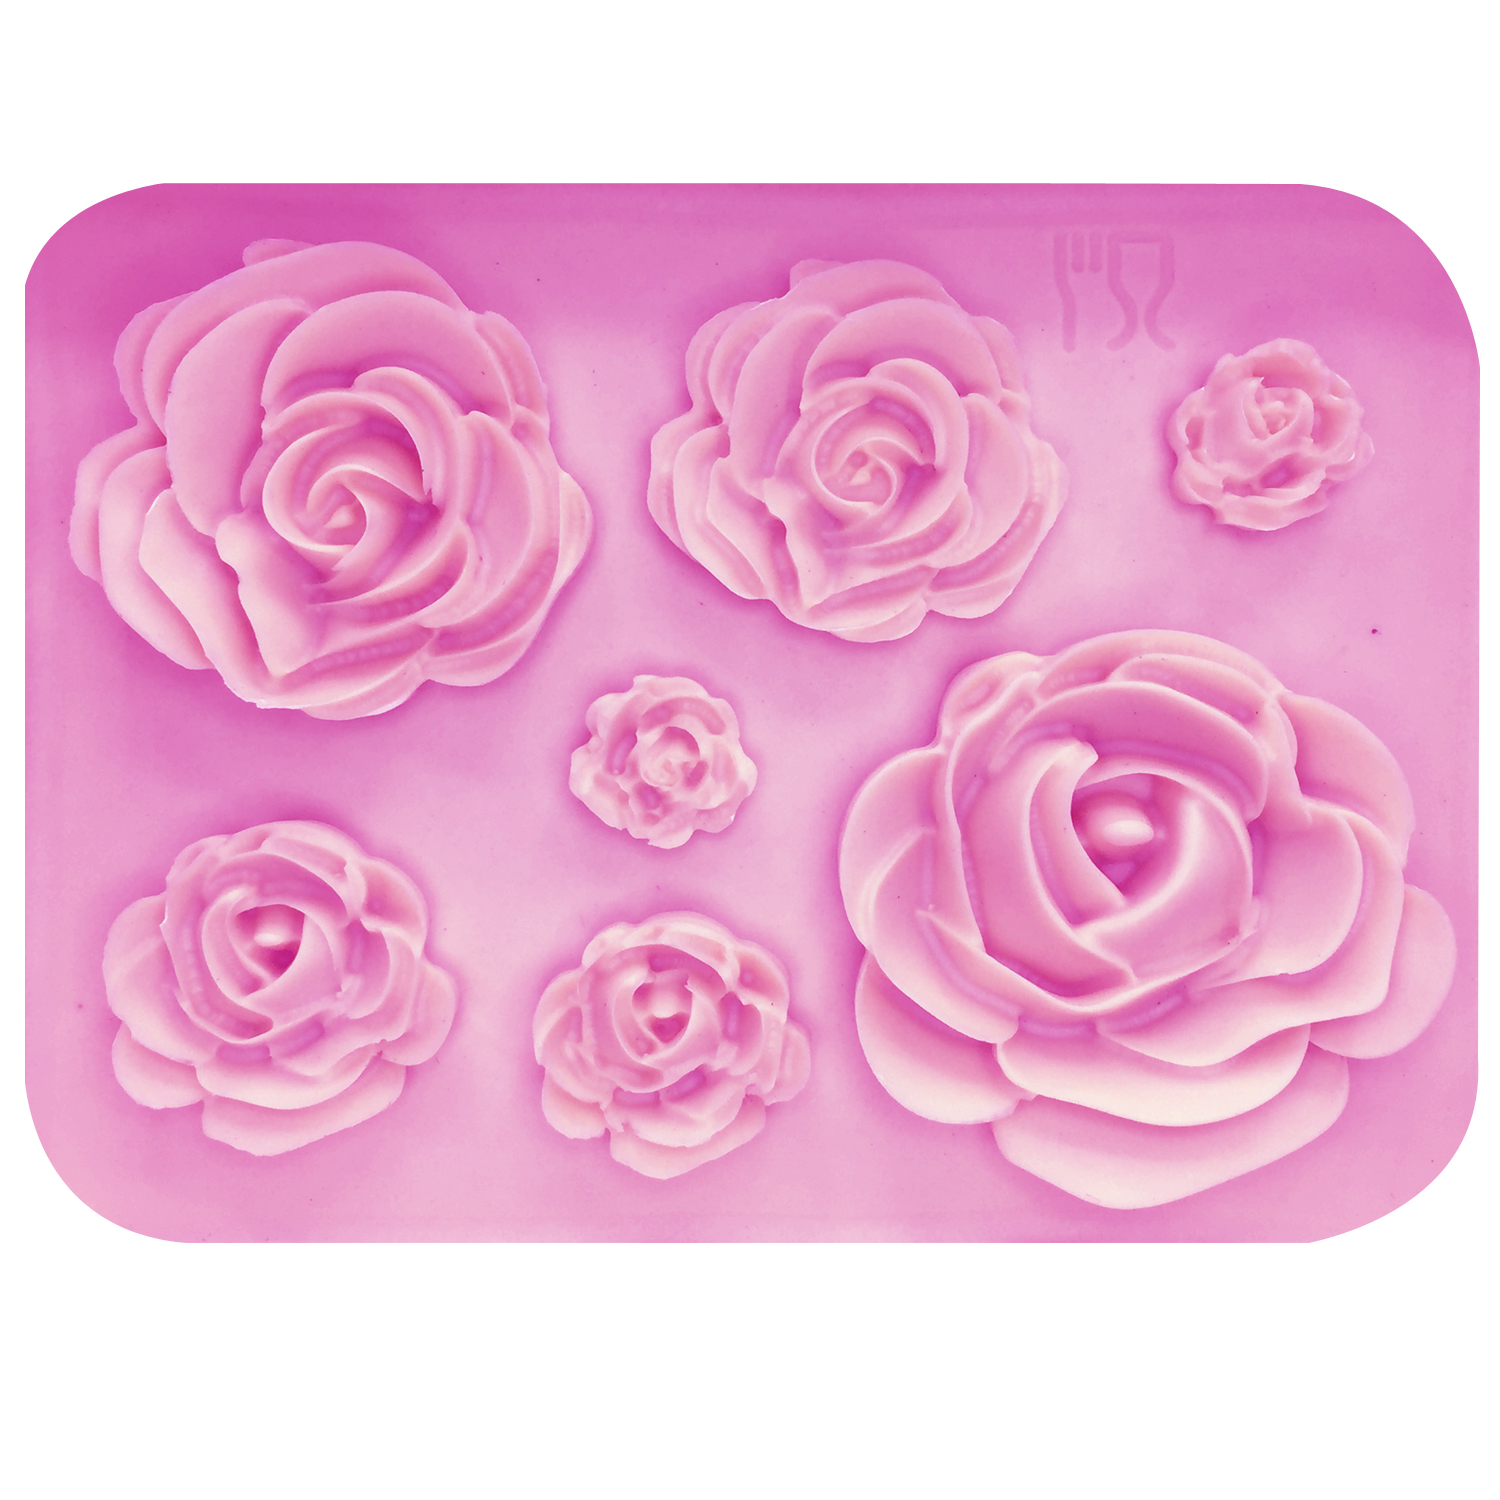 Rose Flowers Silicone Fondant Mold